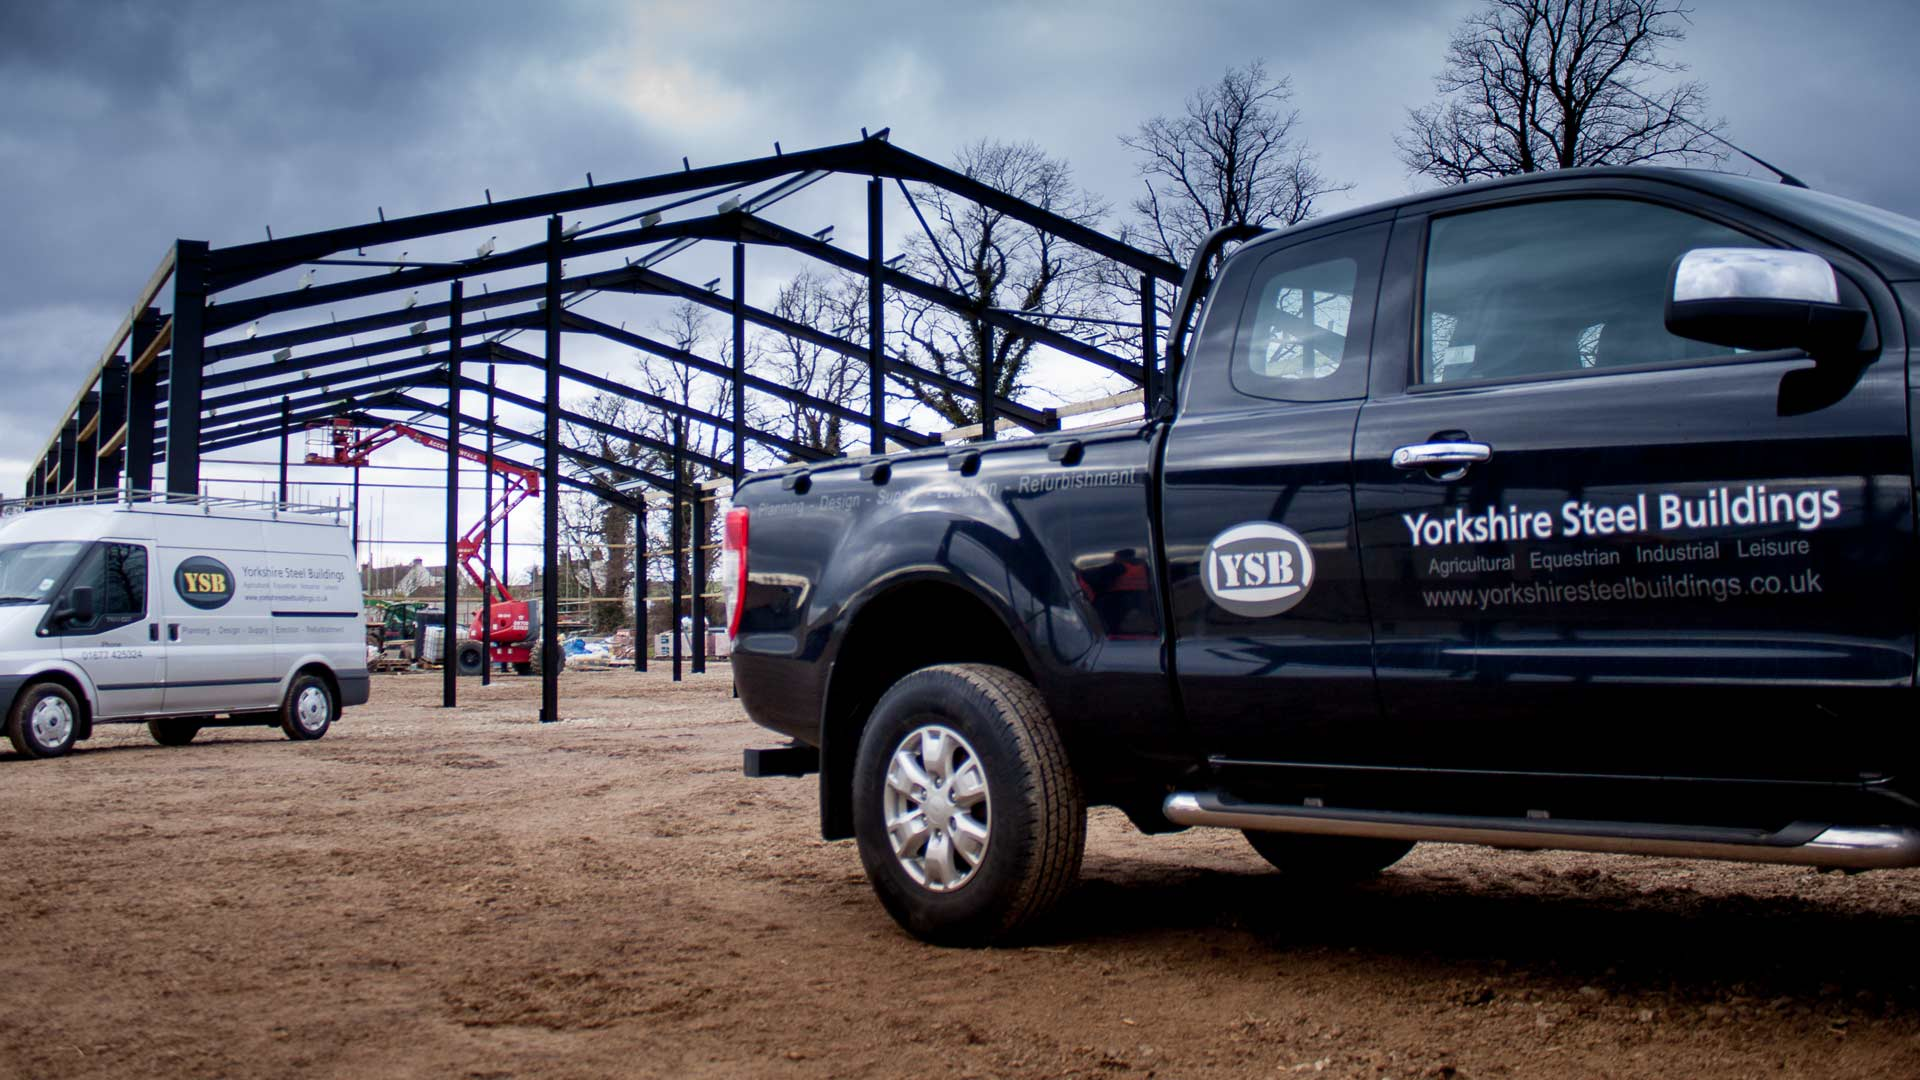 The YSB works vehicles parked neatly in front of a new steel frame farm building